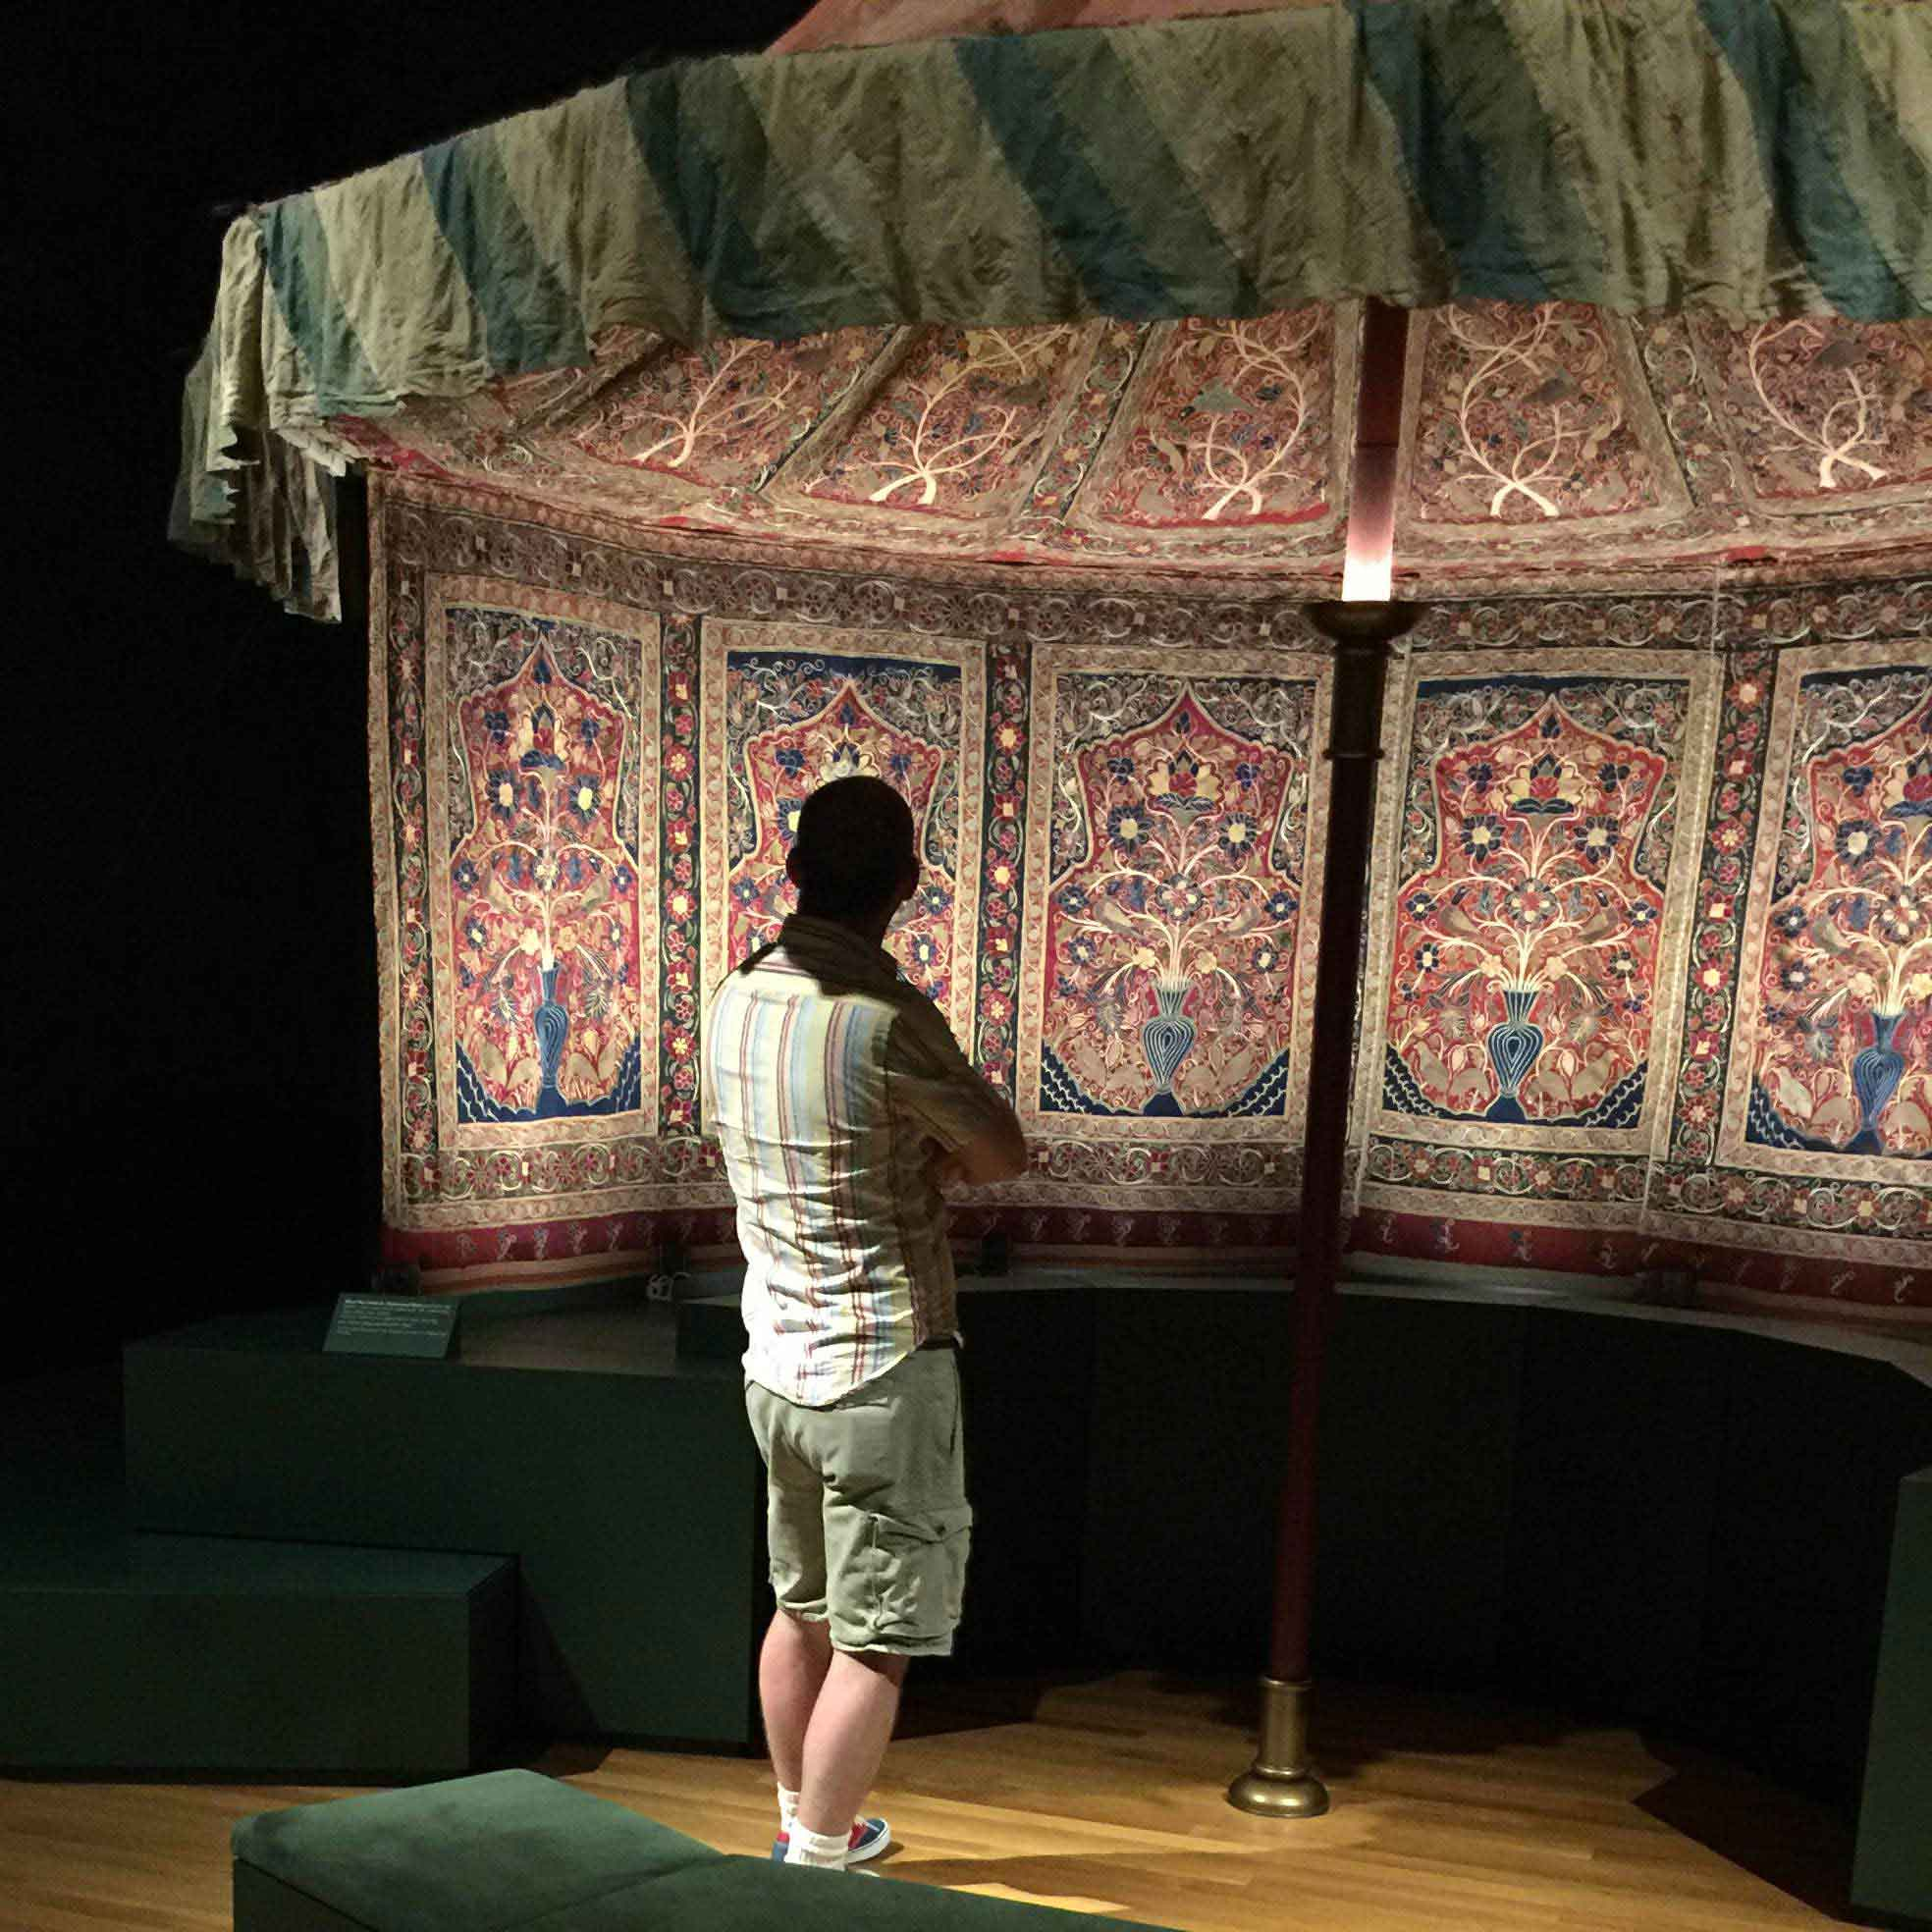 'Behold the Captivating Beauty' - The Ruggist viewing Muhammad Shah's Royal Persian Tent at The Cleveland Museum of Art | Image courtesy of Peter Kitchen